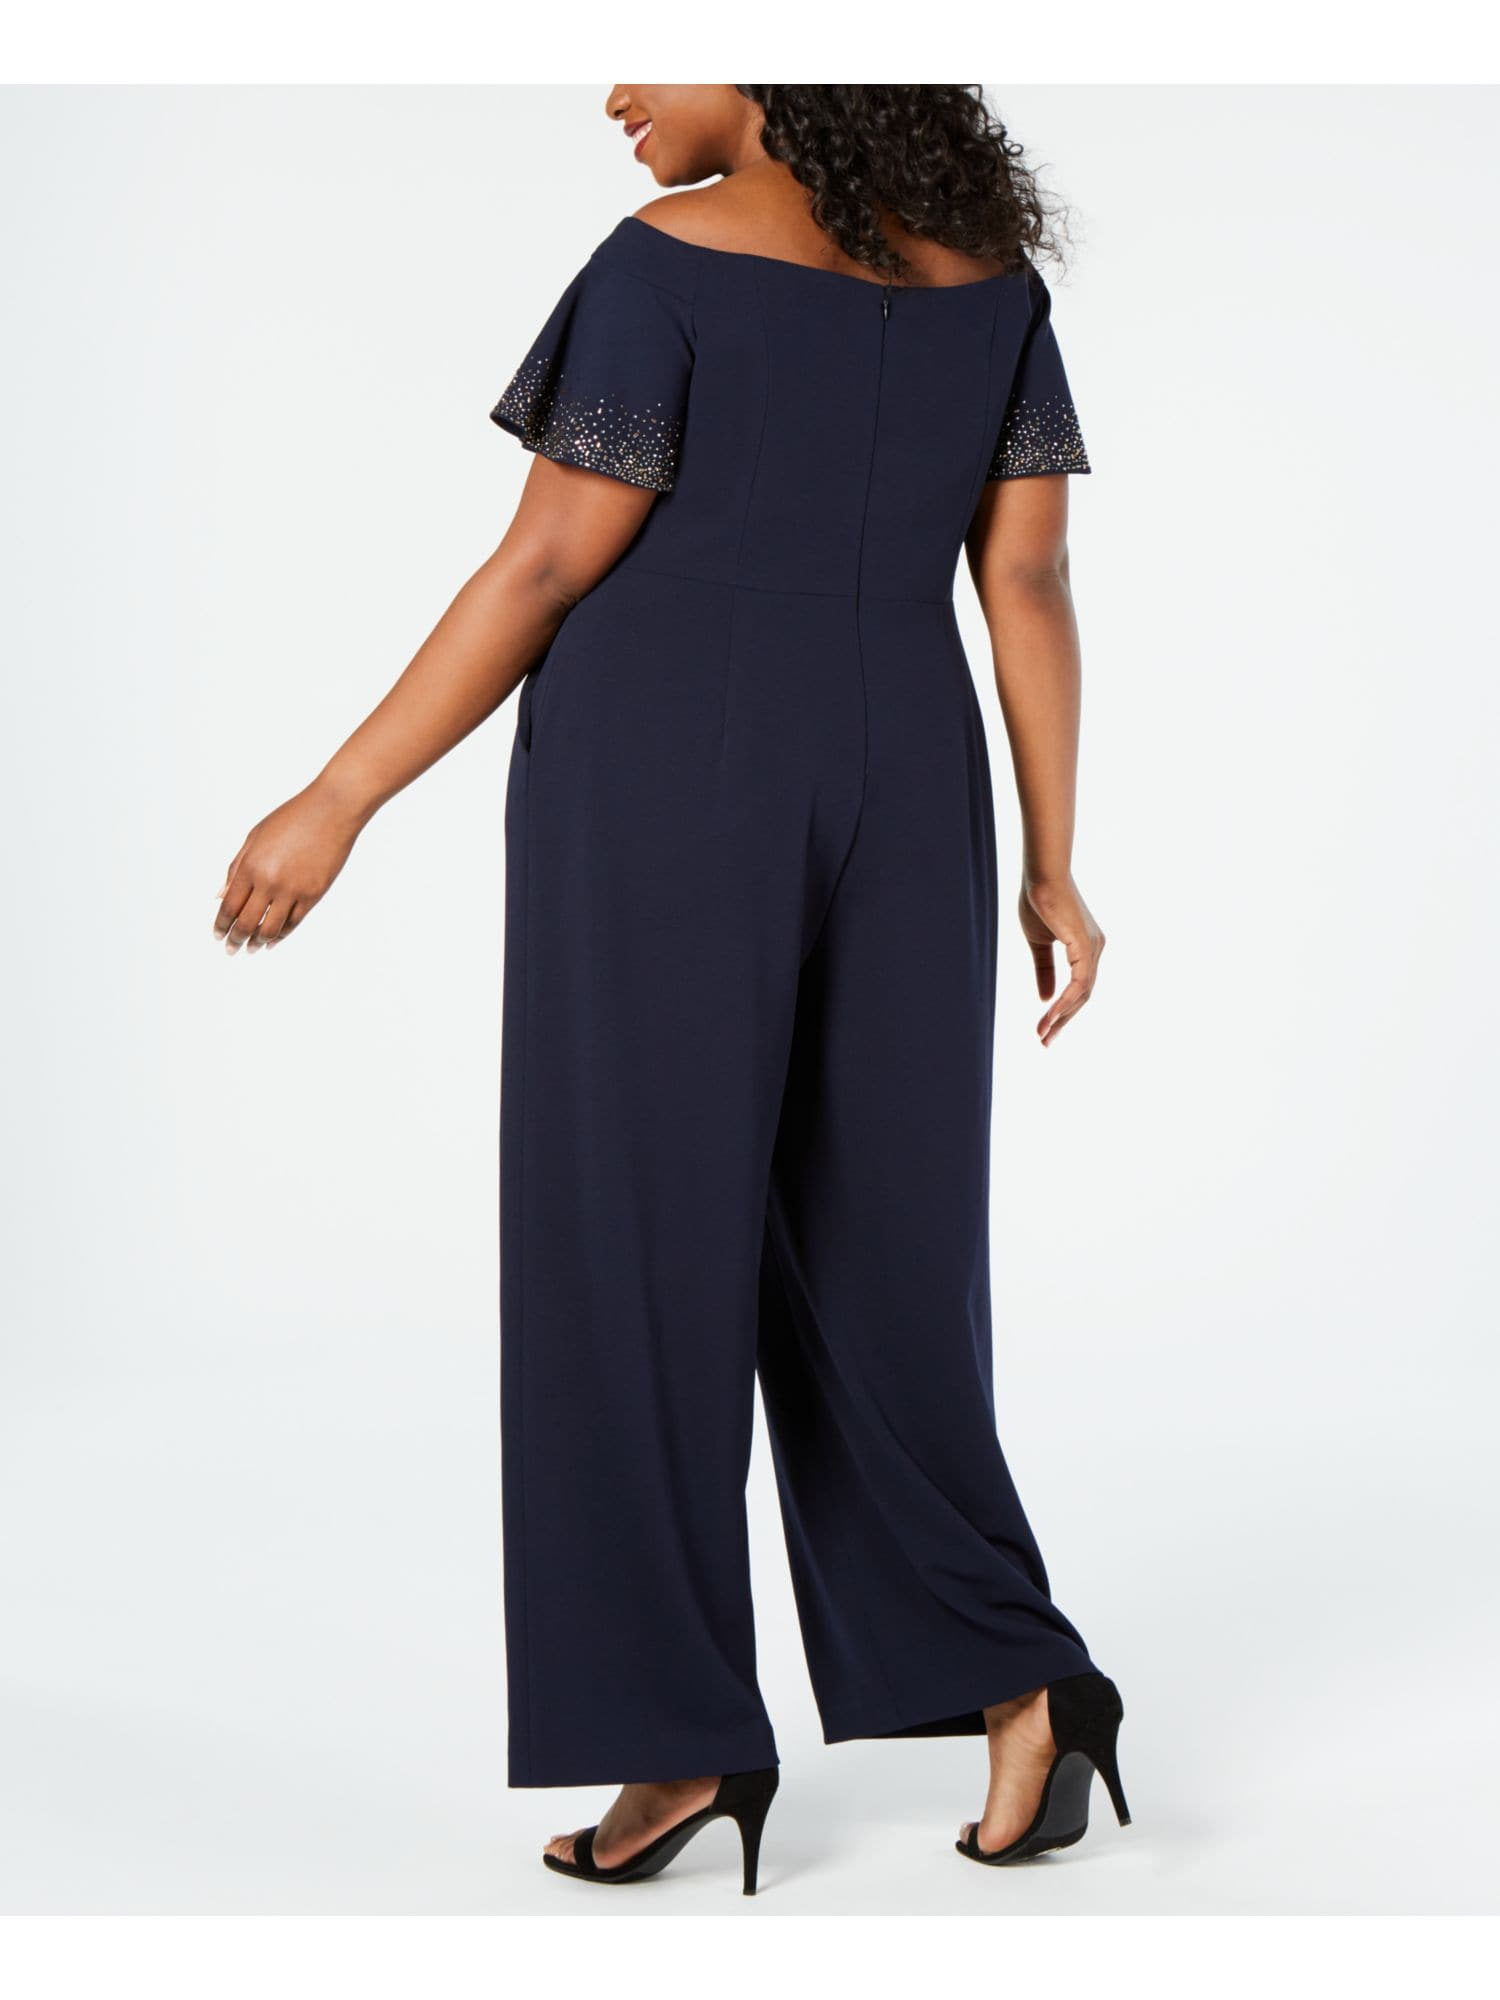 Navy Short Sleeve Off Shoulder Jumpsuit - FLJ CORPORATIONS